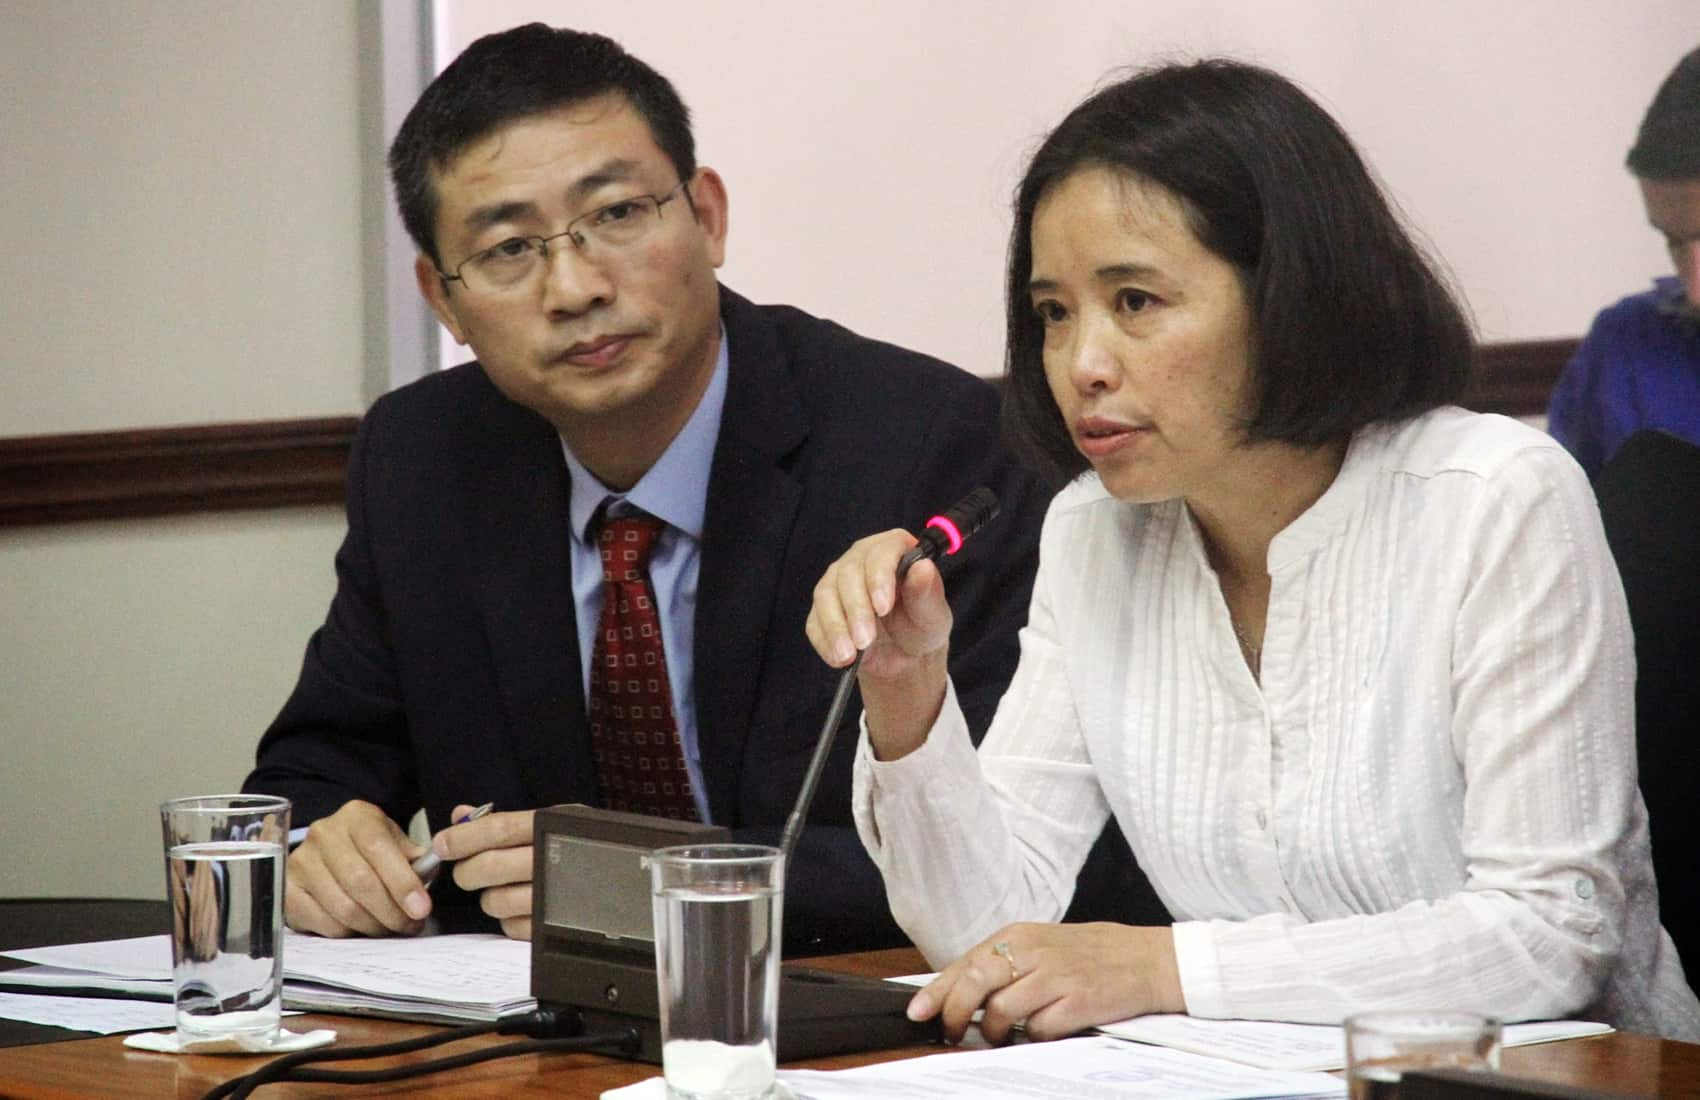 CHEC representatives Zhou Jingxiog (left) and Teresa Wu (right).